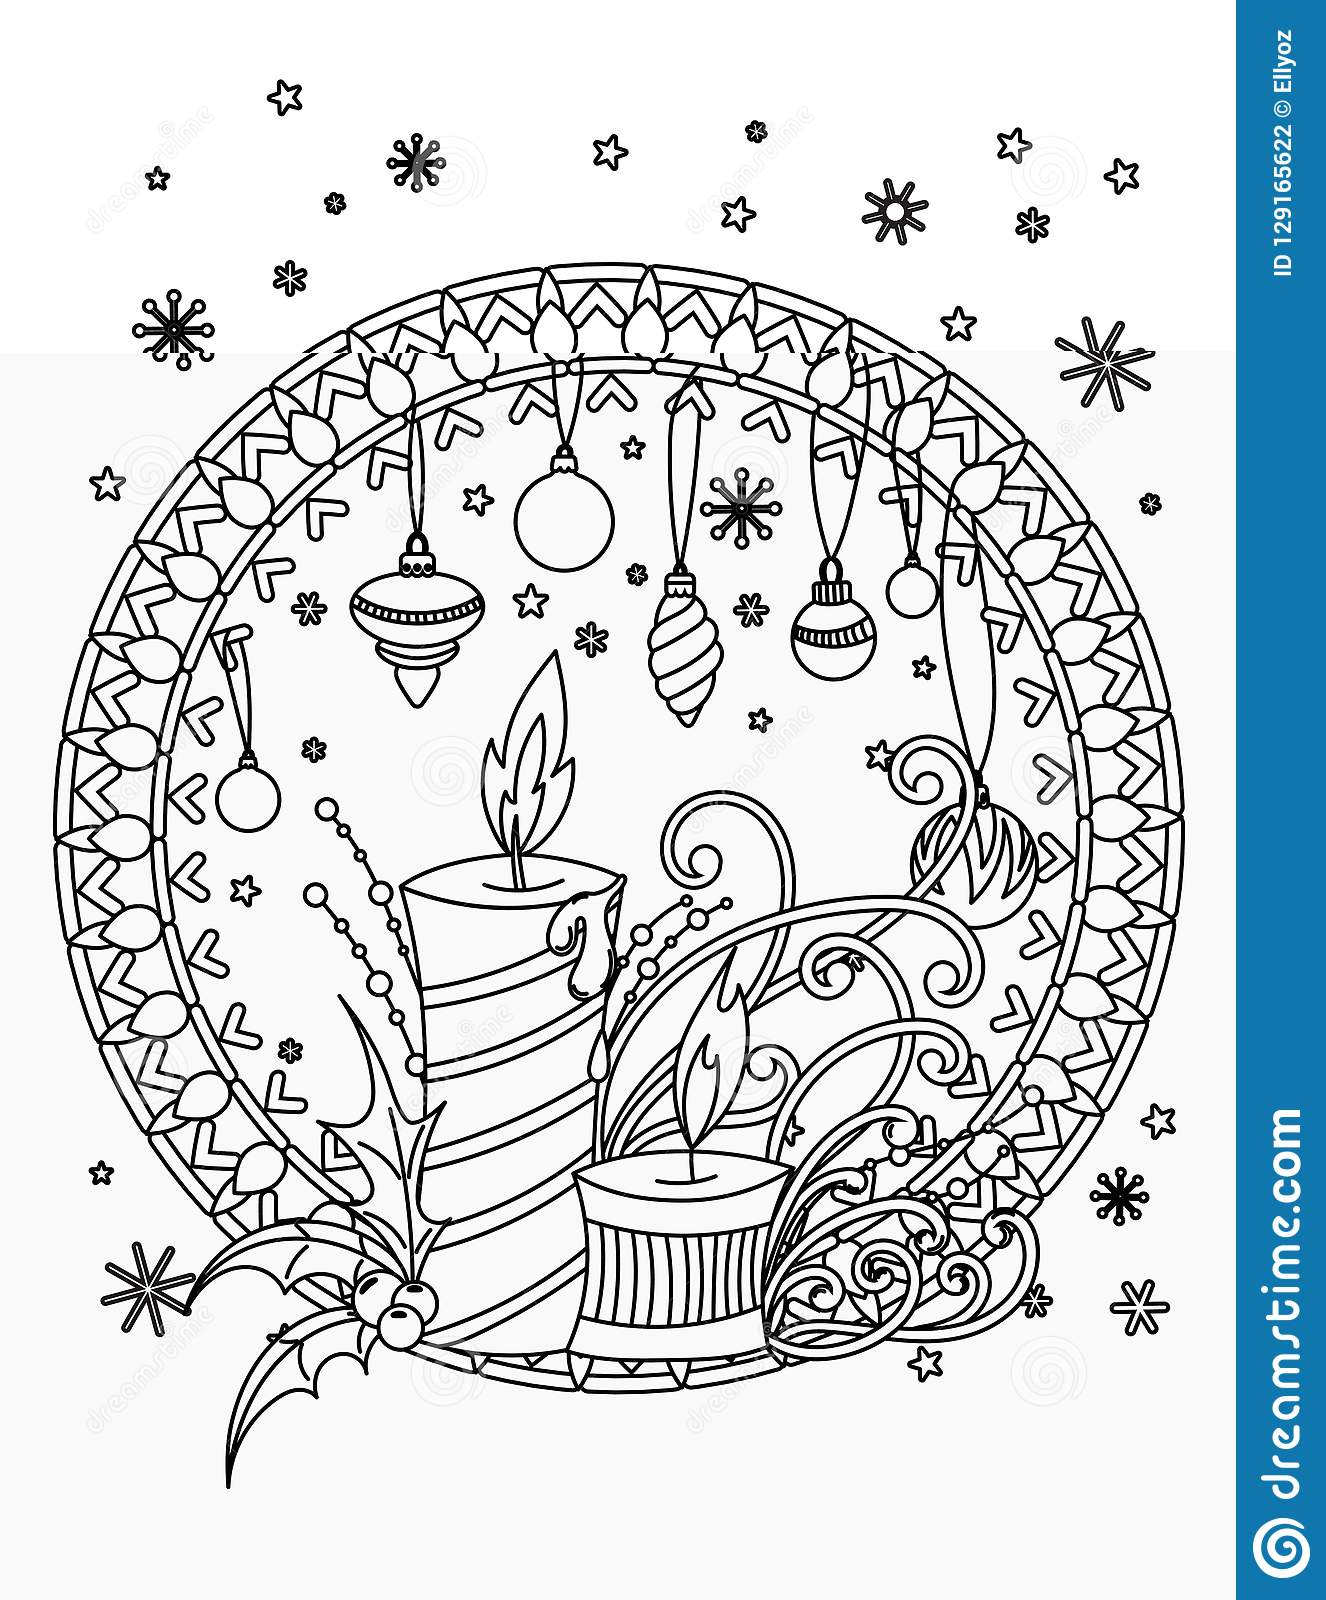 - Christmas Coloring Page Stock Vector. Illustration Of Adult